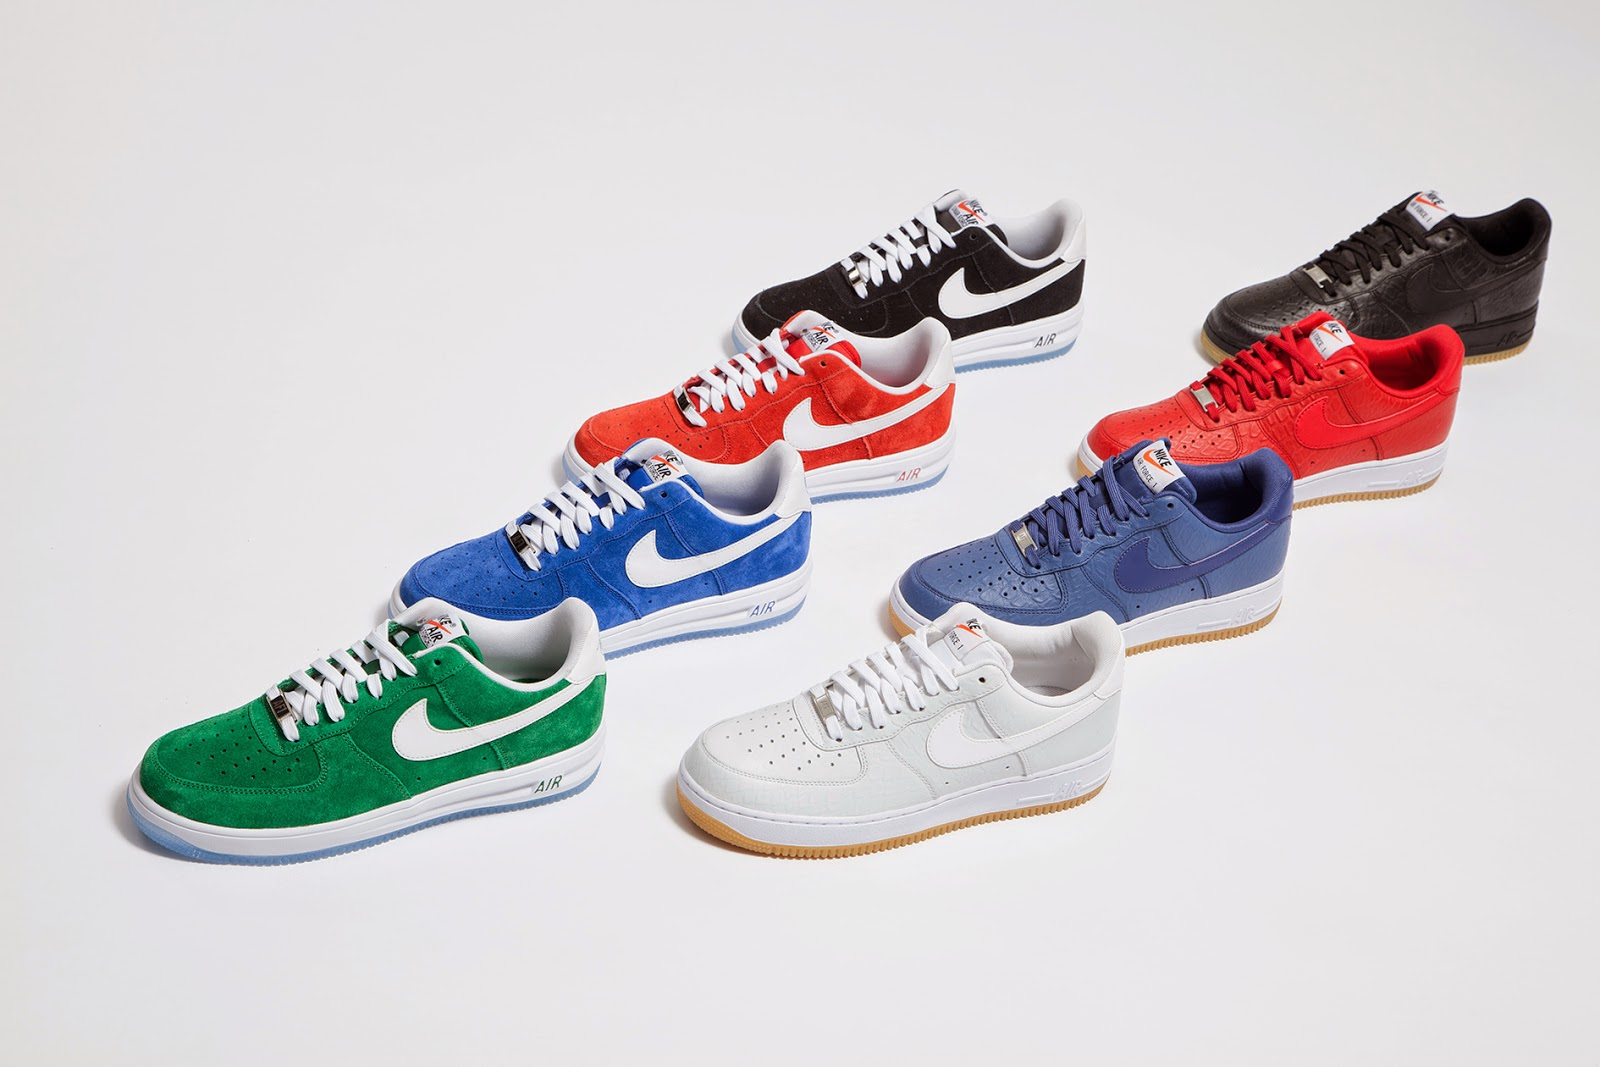 ATOMLABOR LIFESTYLE BLOG - SNEAKER NEWS VON FOOTLOCKER - FOOT LOCKER NIKE COLLECTION - #ITMUSTBEFEB